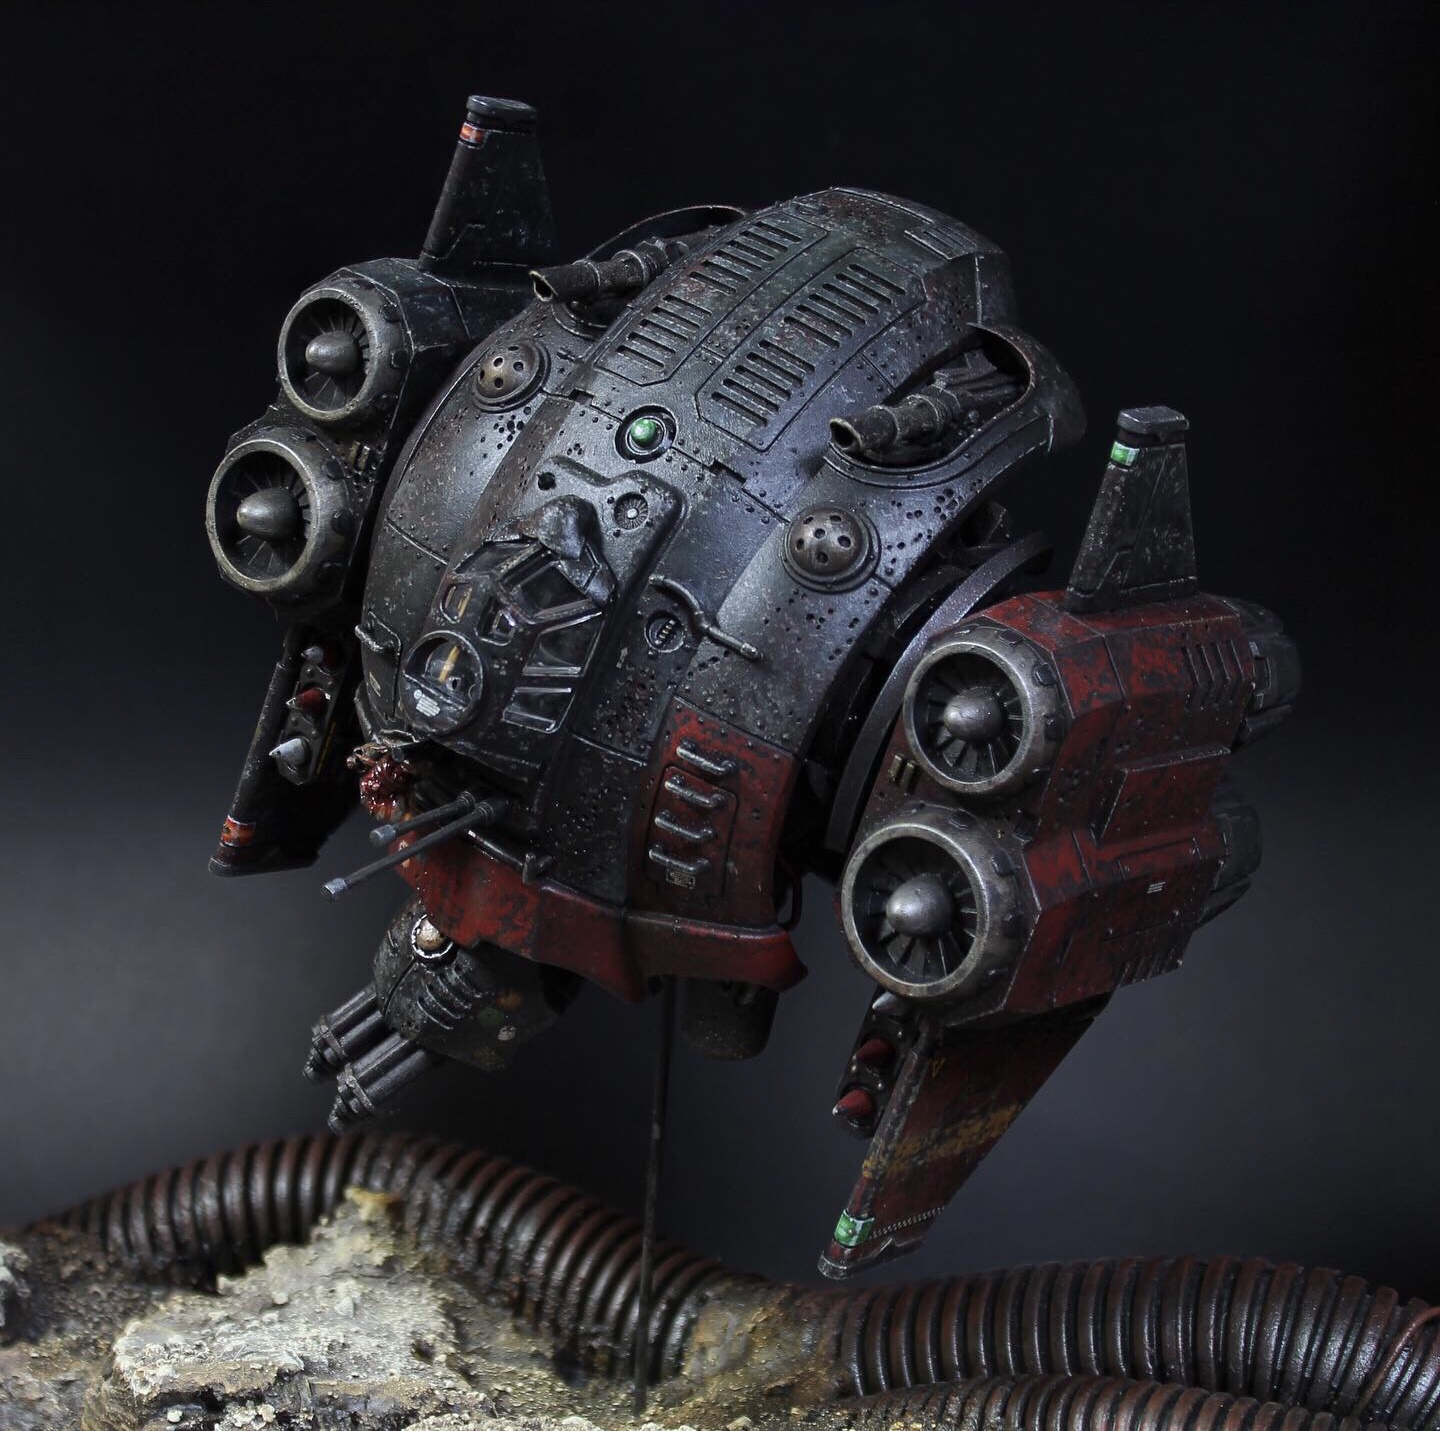 """Moon Hoof, ancient small craft war relic of the Sammahs Floating Cities, thought to be last of the Intrépide. Repurposed to the founding Wardens of house Viegtegol in the rebirthing era of Sammahs, the Hoof was then outfit to dispatch wide manner of ground and air conflict. Now long grafted to Kaelmn , once princeps prime of Viegtegol. Hoof has been """"upgraded"""" at the mysterious hands of YOD affiliate tecnoartisans and mech-biology perverts attempting to proxy a psychic integration between the Moon Hoof and Kaelmn facilitated by interlink of multiple tasked servo and servitor constructs."""